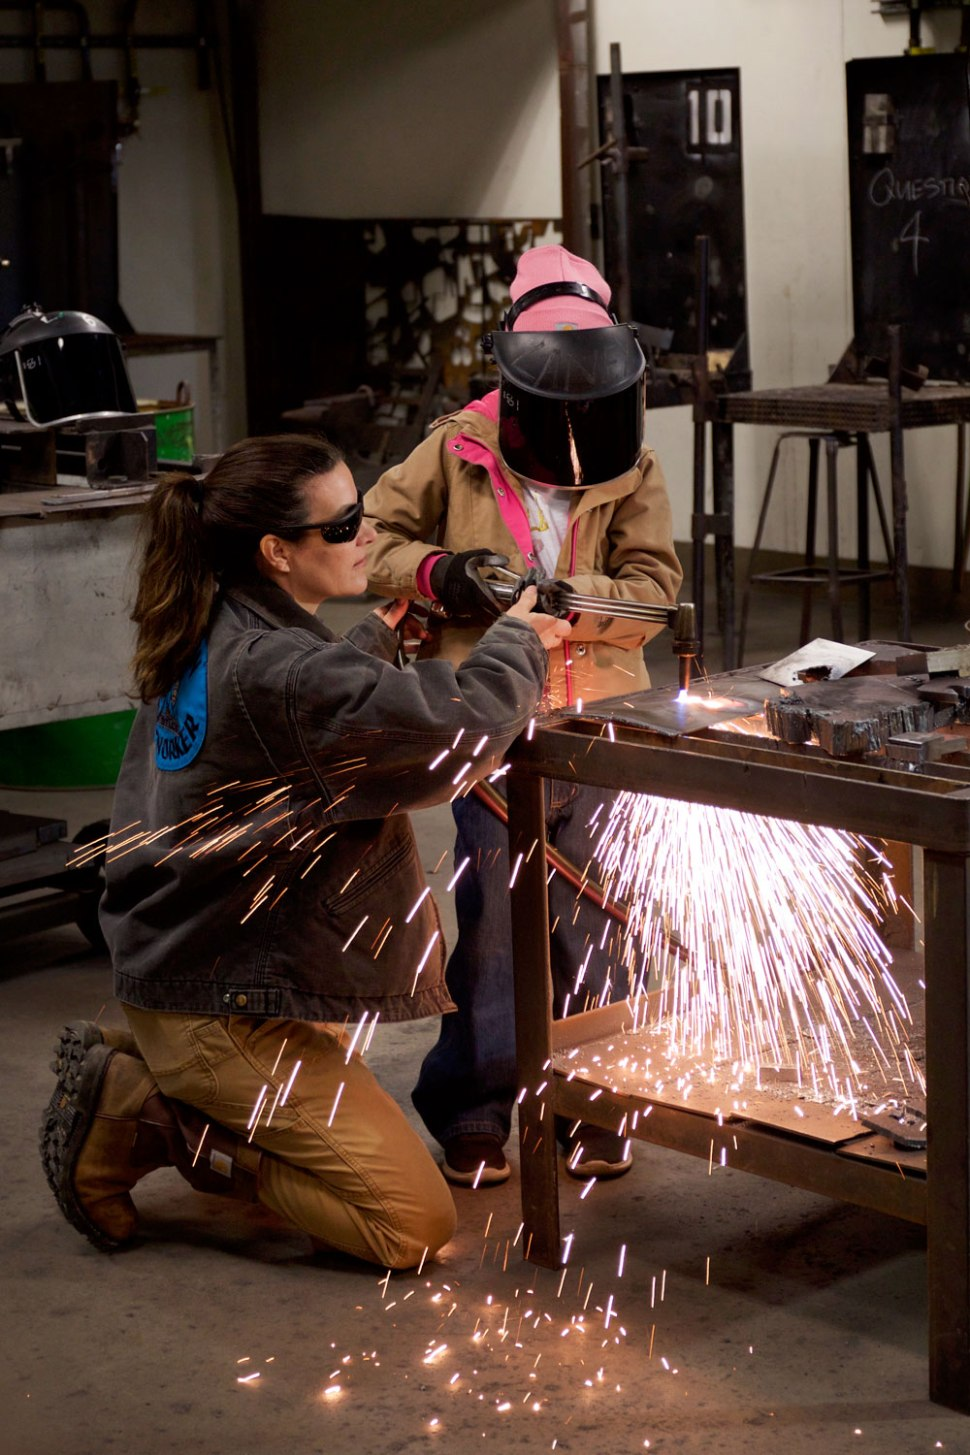 Bay Area Welder Diana Planson / Crafted in Carhartt